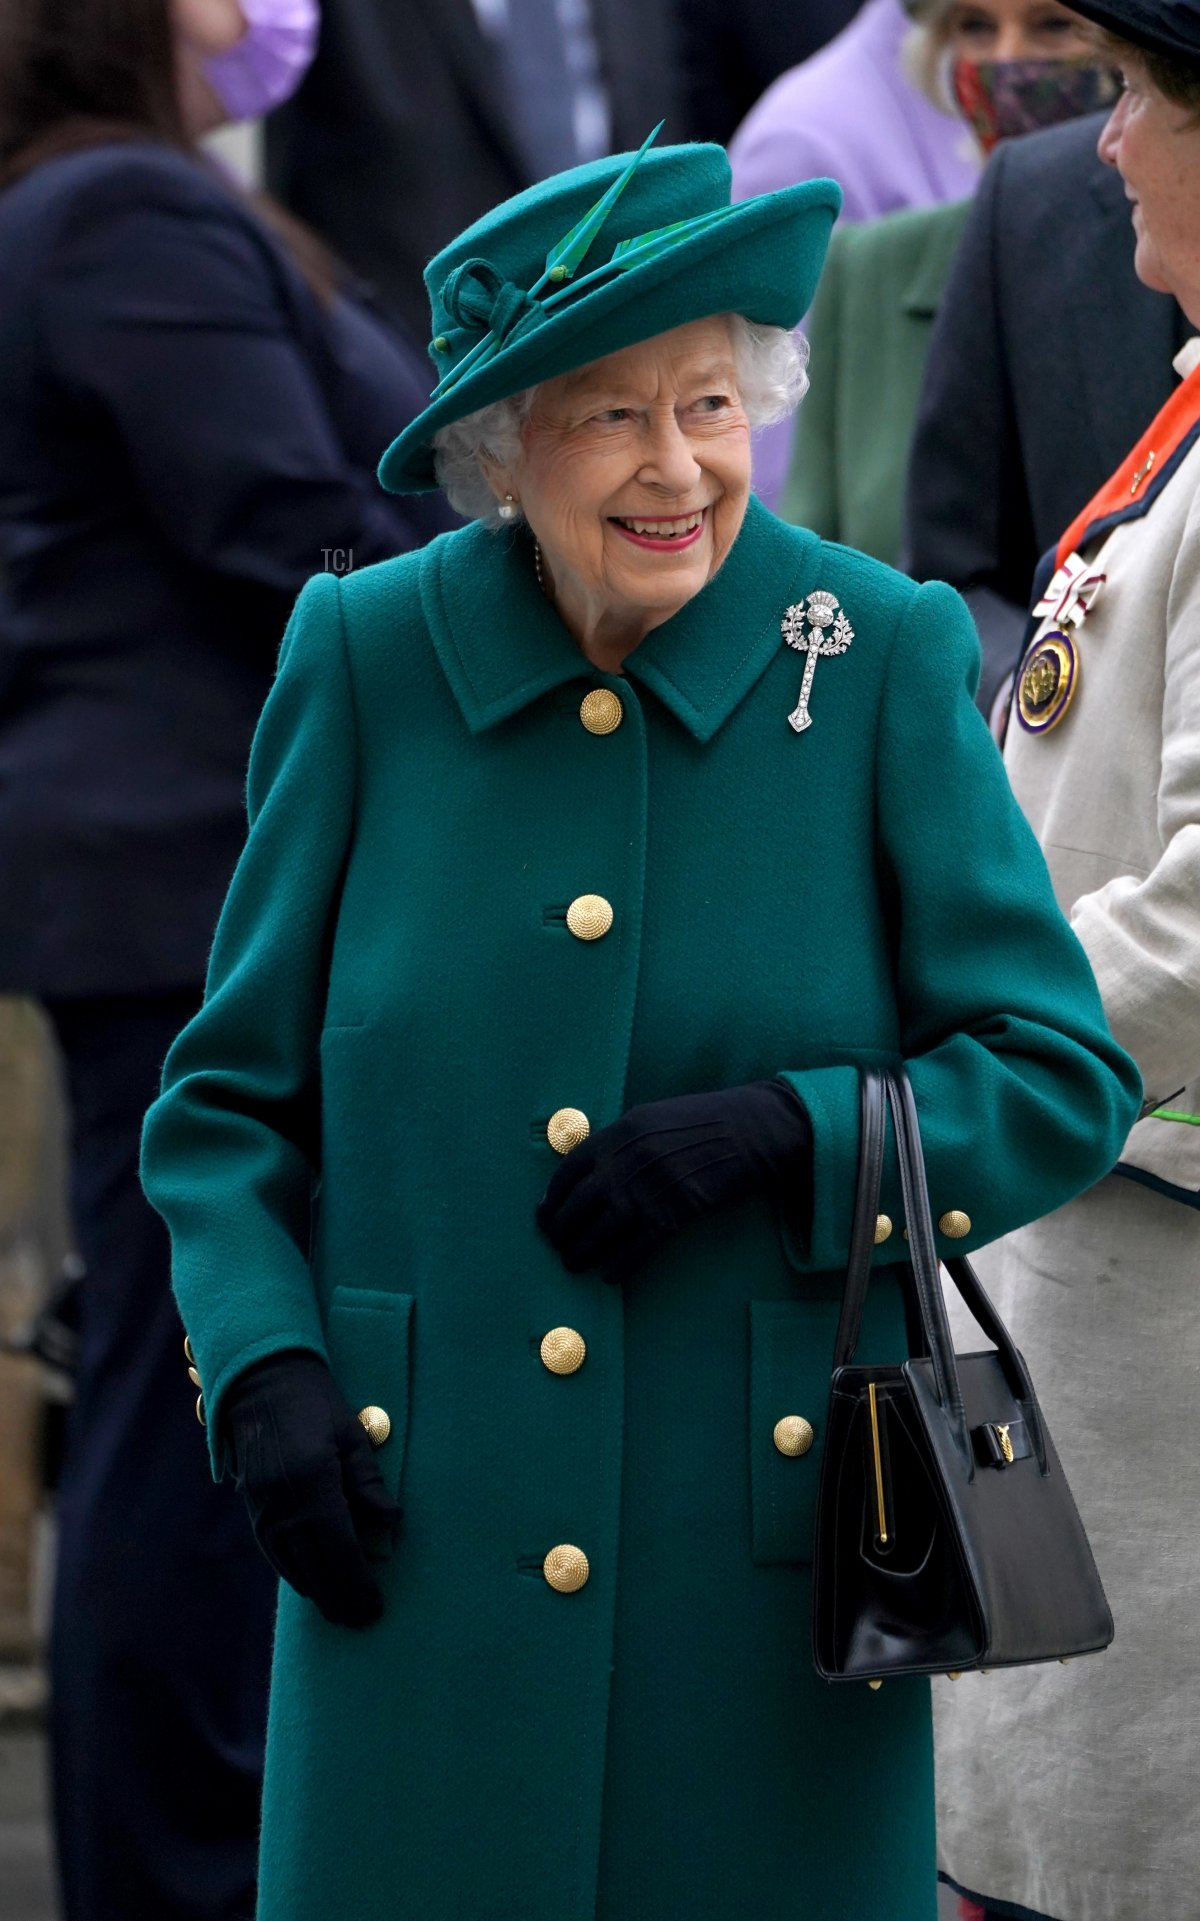 Queen Elizabeth II arrives for the opening of the sixth session of the Scottish Parliament on October 02, 2021 in Edinburgh, Scotland